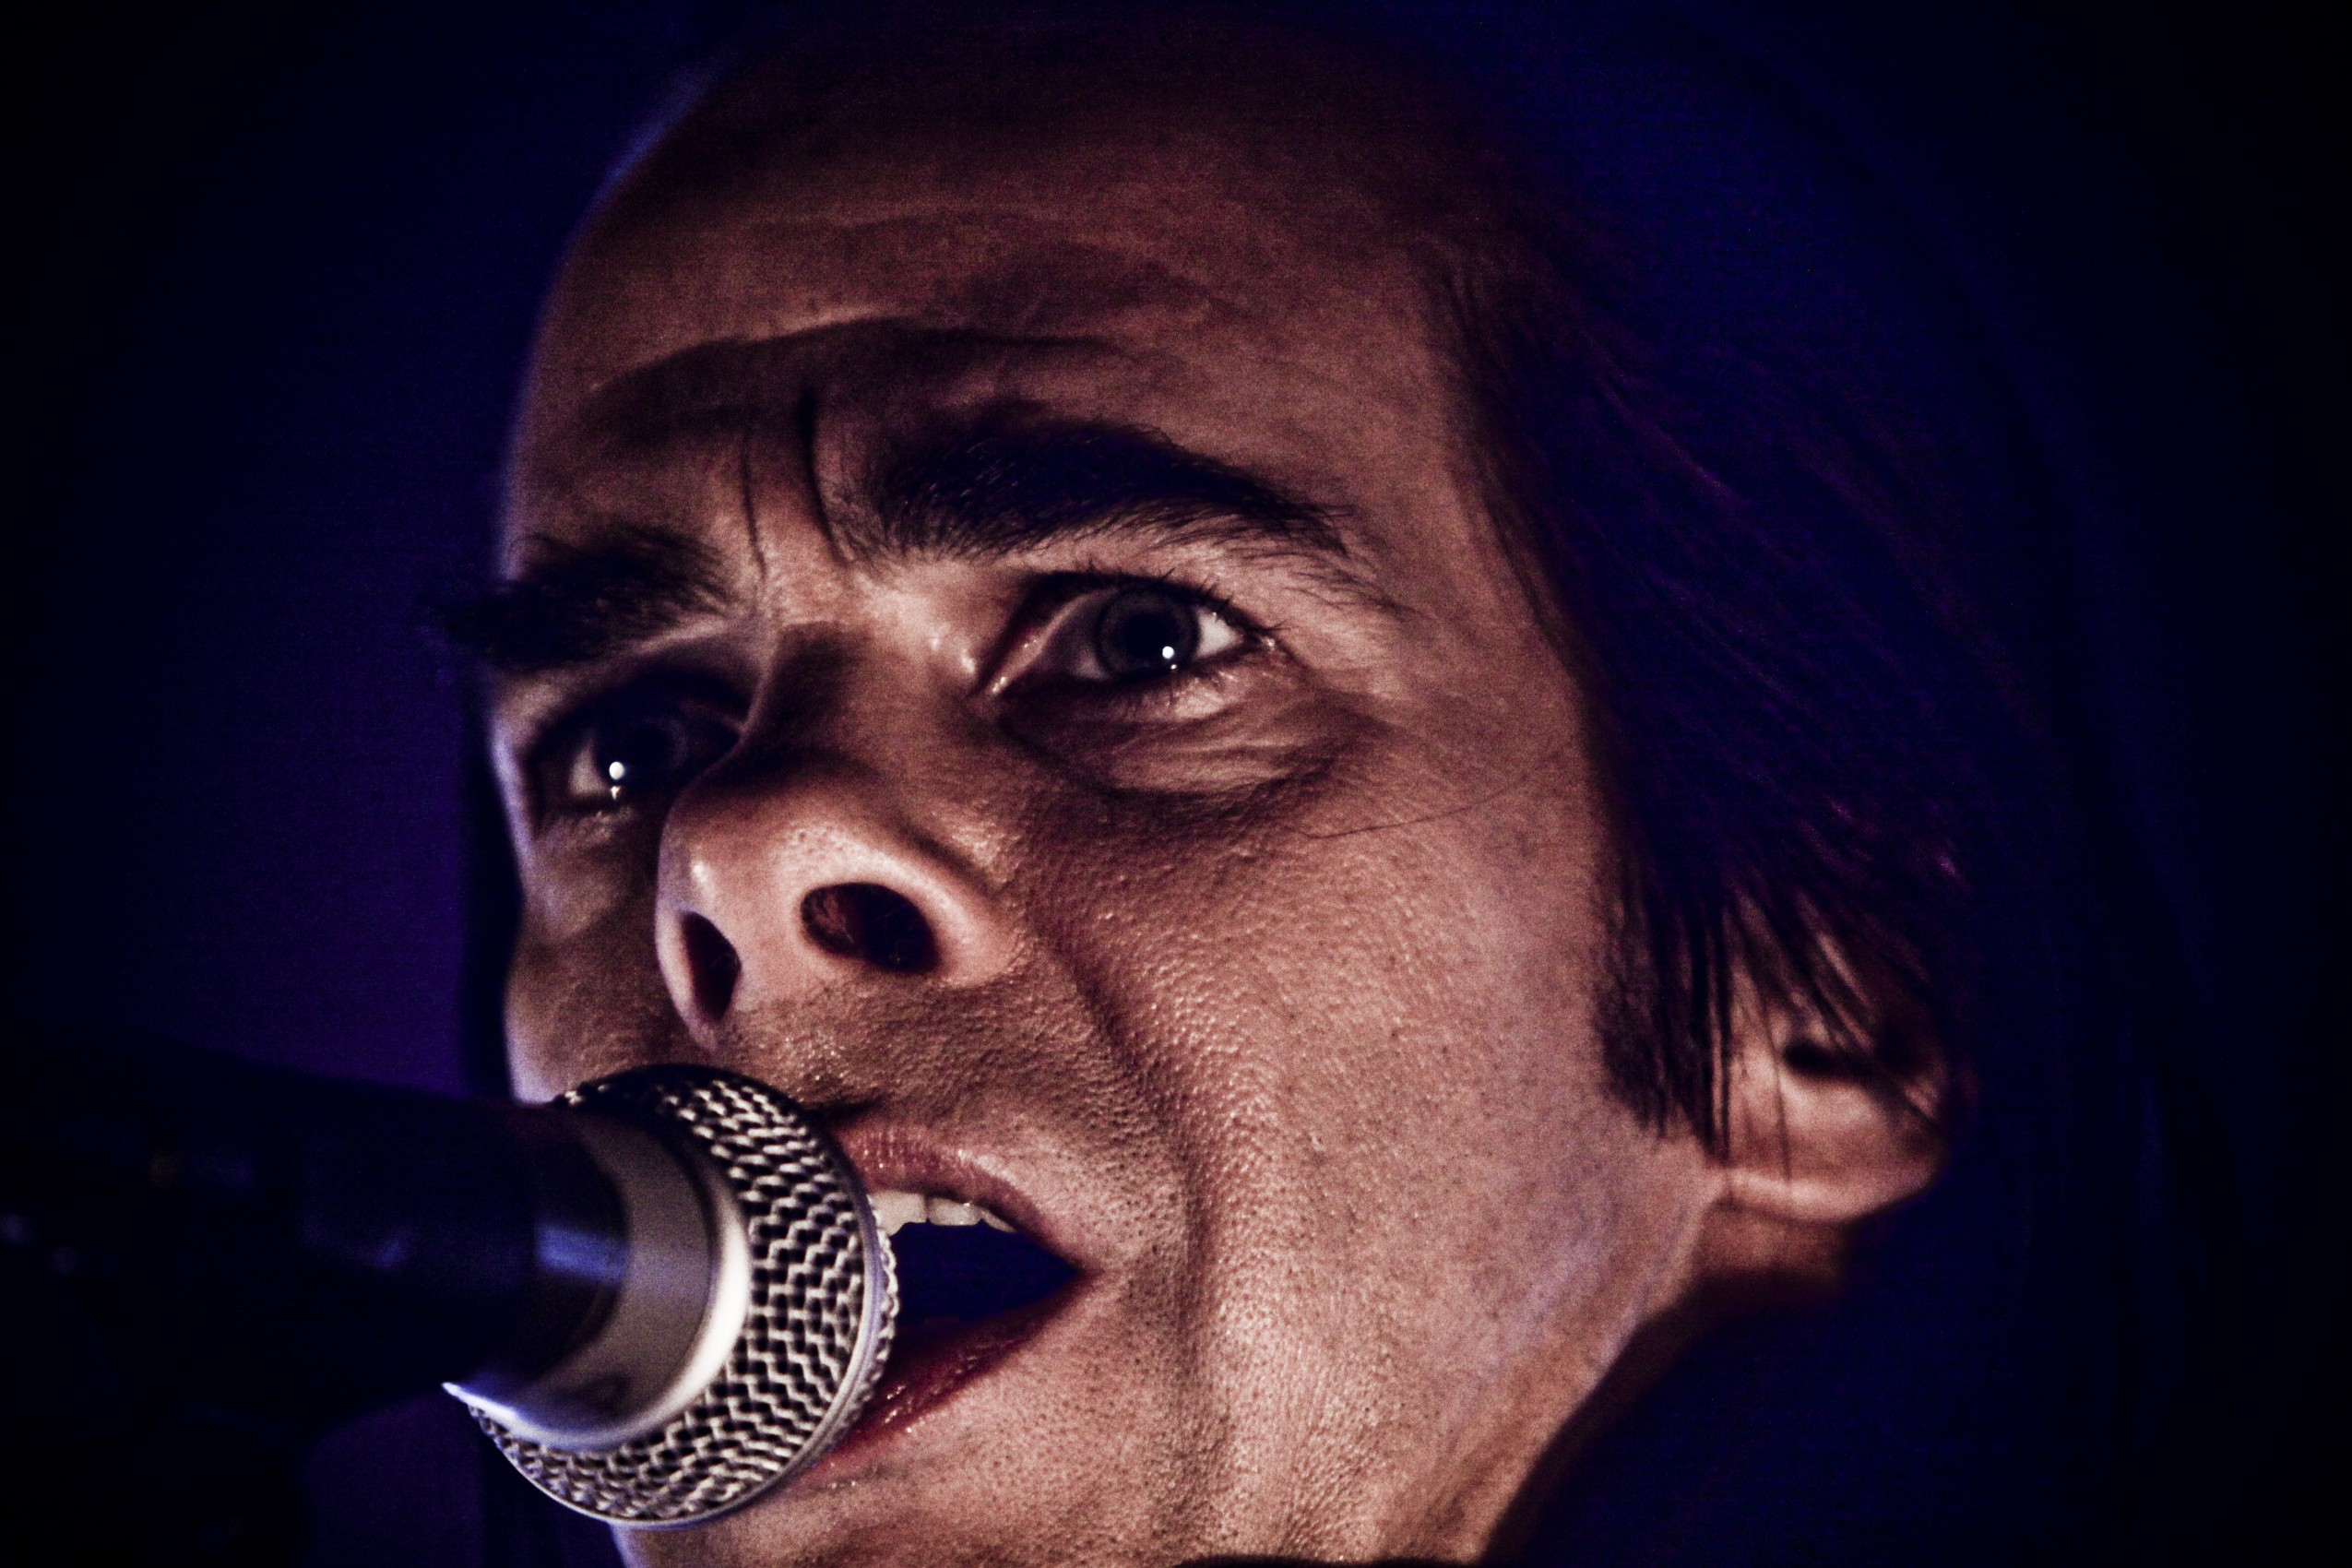 07 Oct 2010, Rome, Italy --- Nick Cave perform in Rome. --- Image by © Simone Cecchetti/Corbis